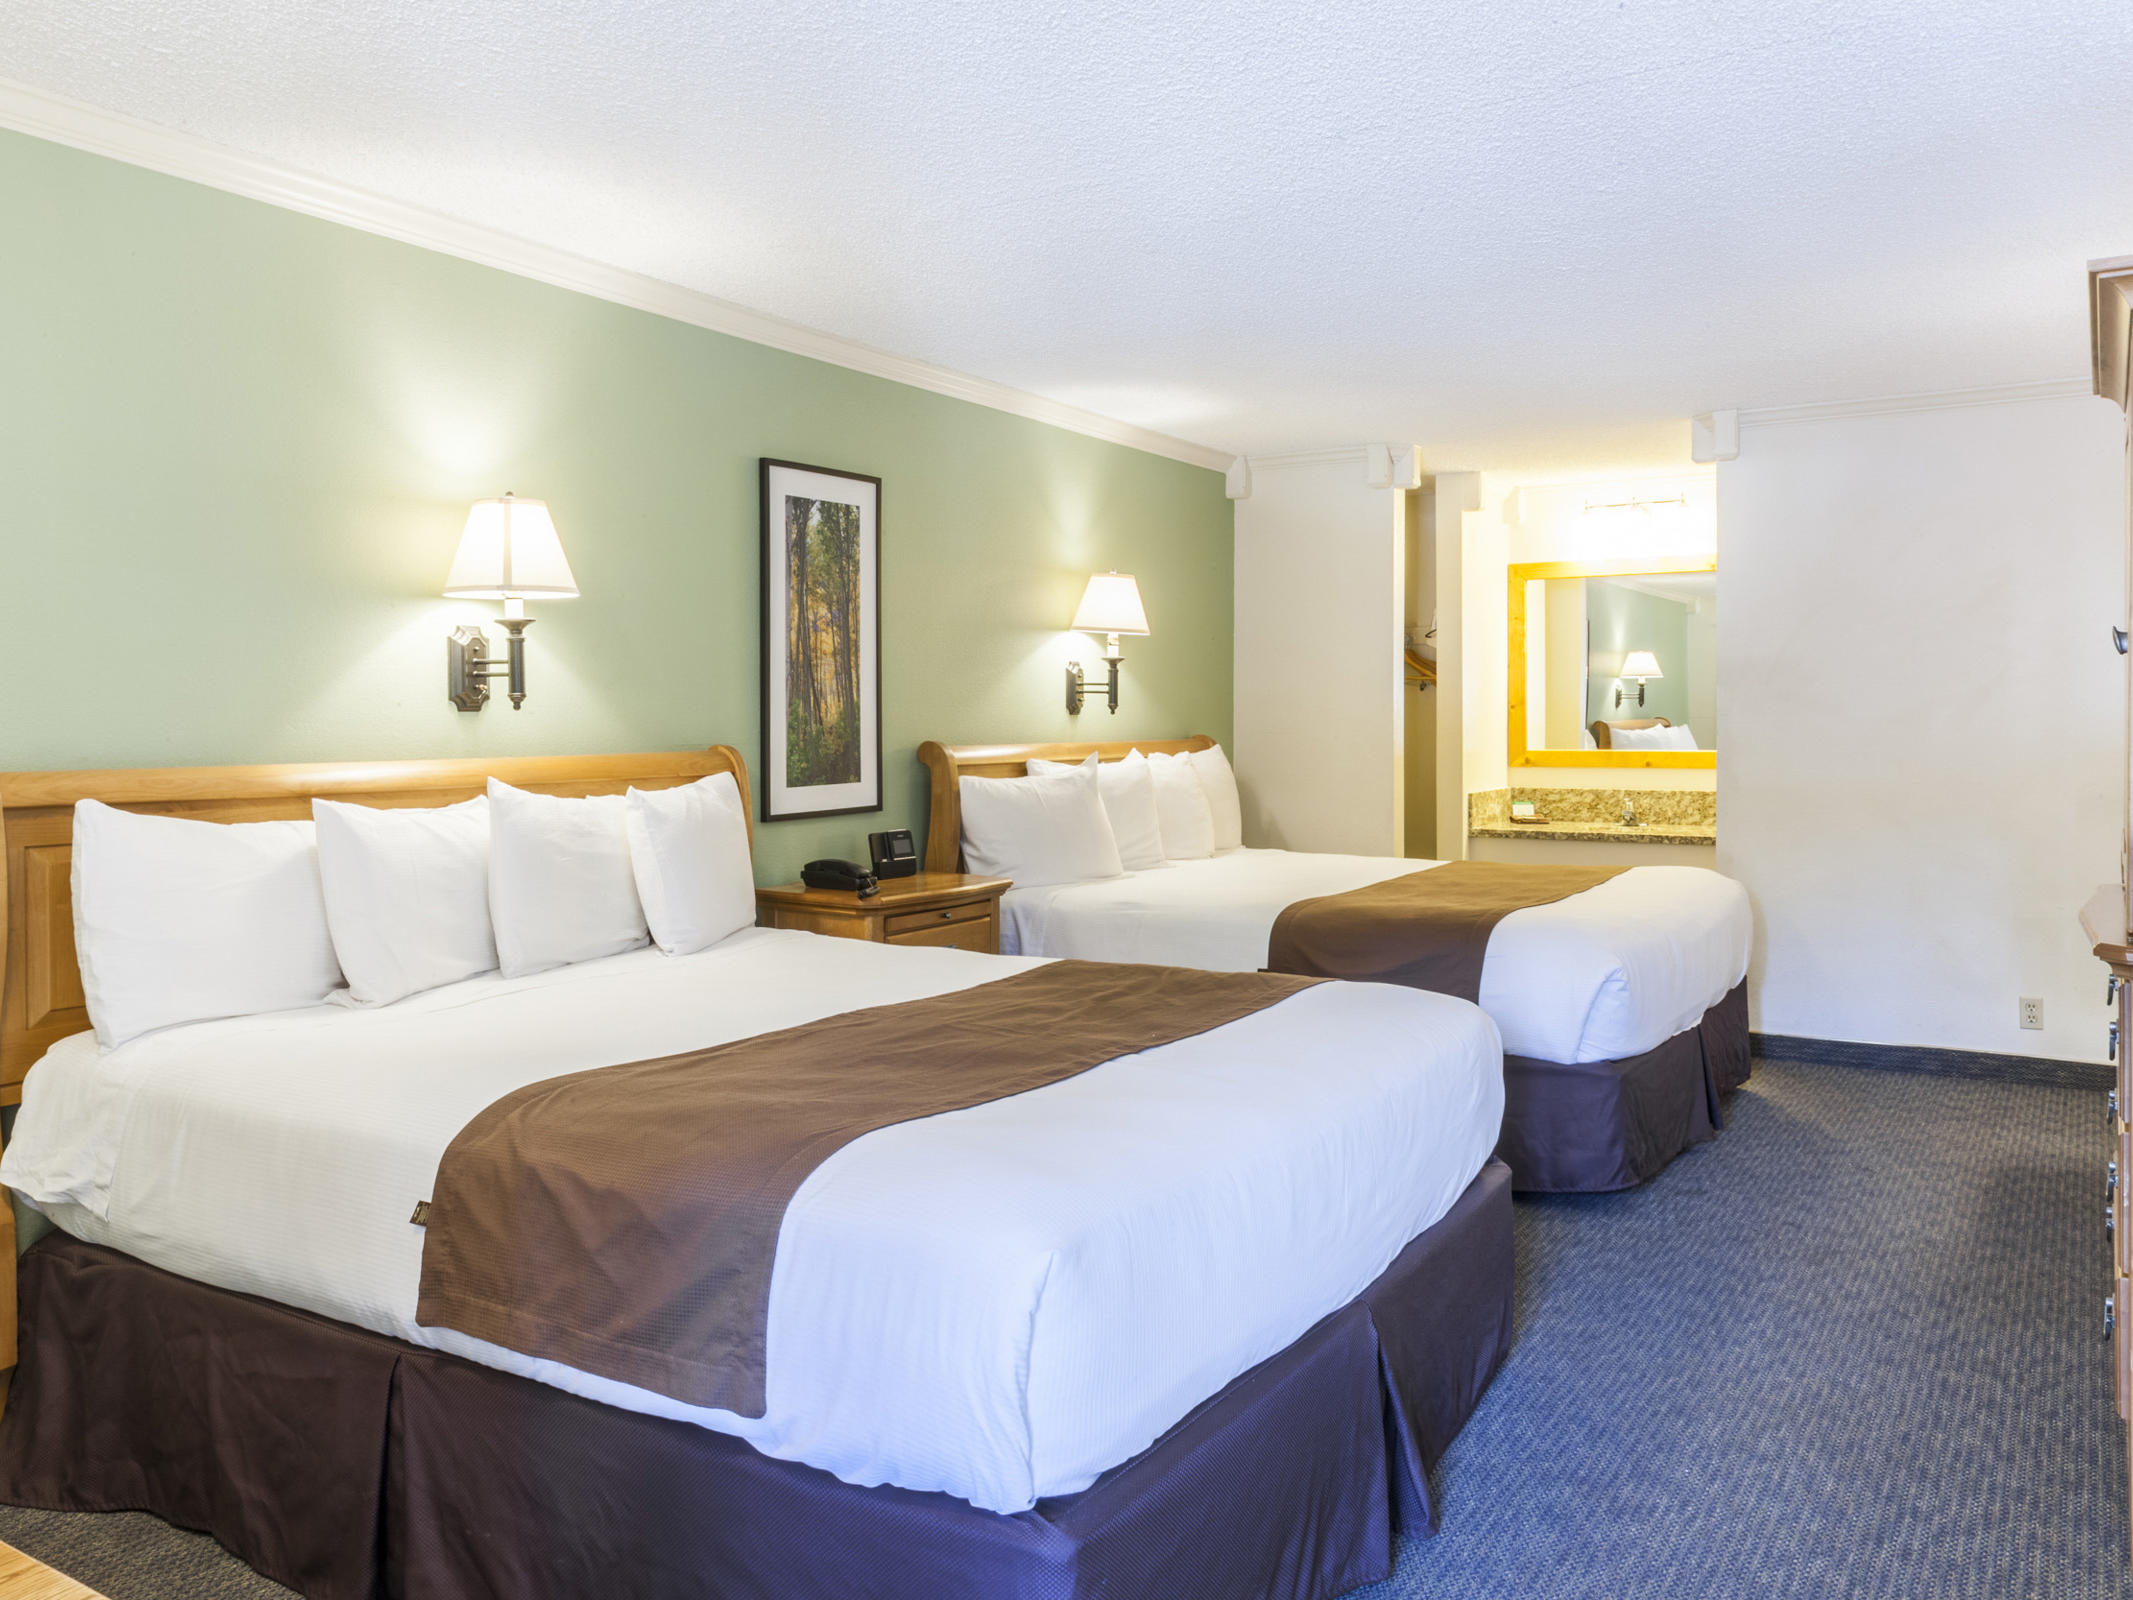 room with two large beds and wall sconces